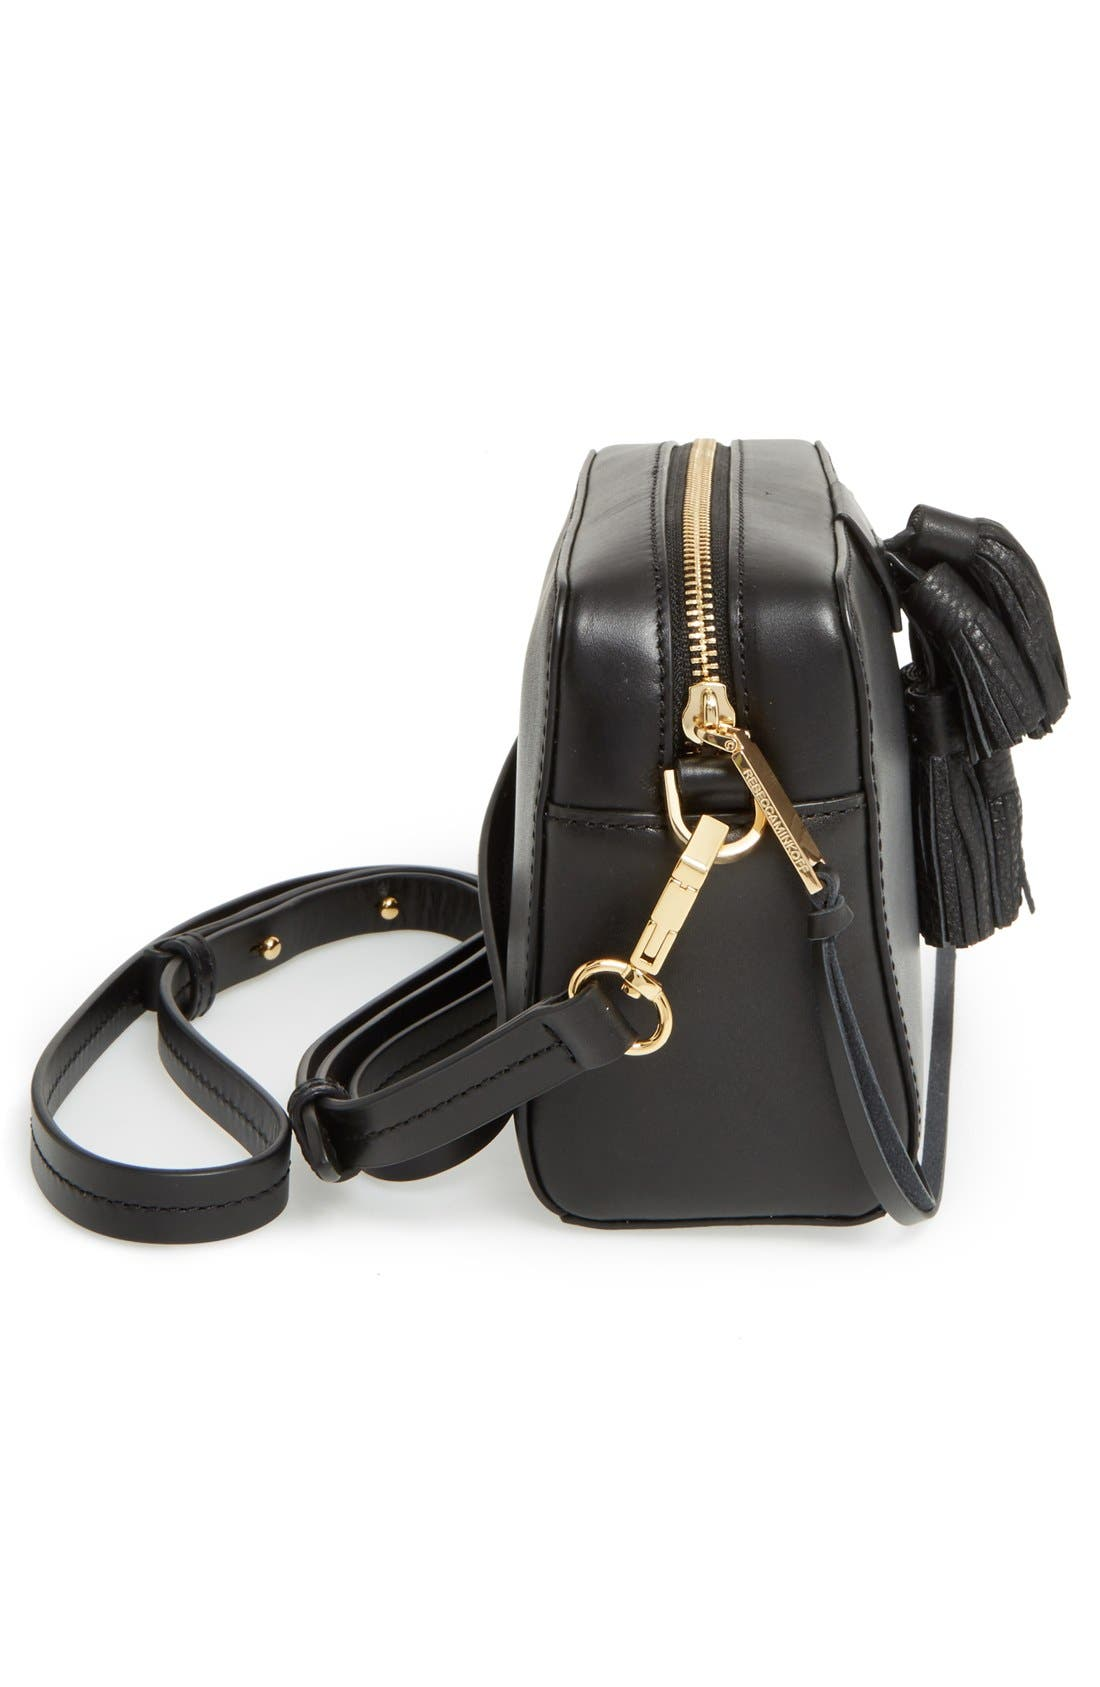 'Mini Sofia' Crossbody Bag,                             Alternate thumbnail 6, color,                             001